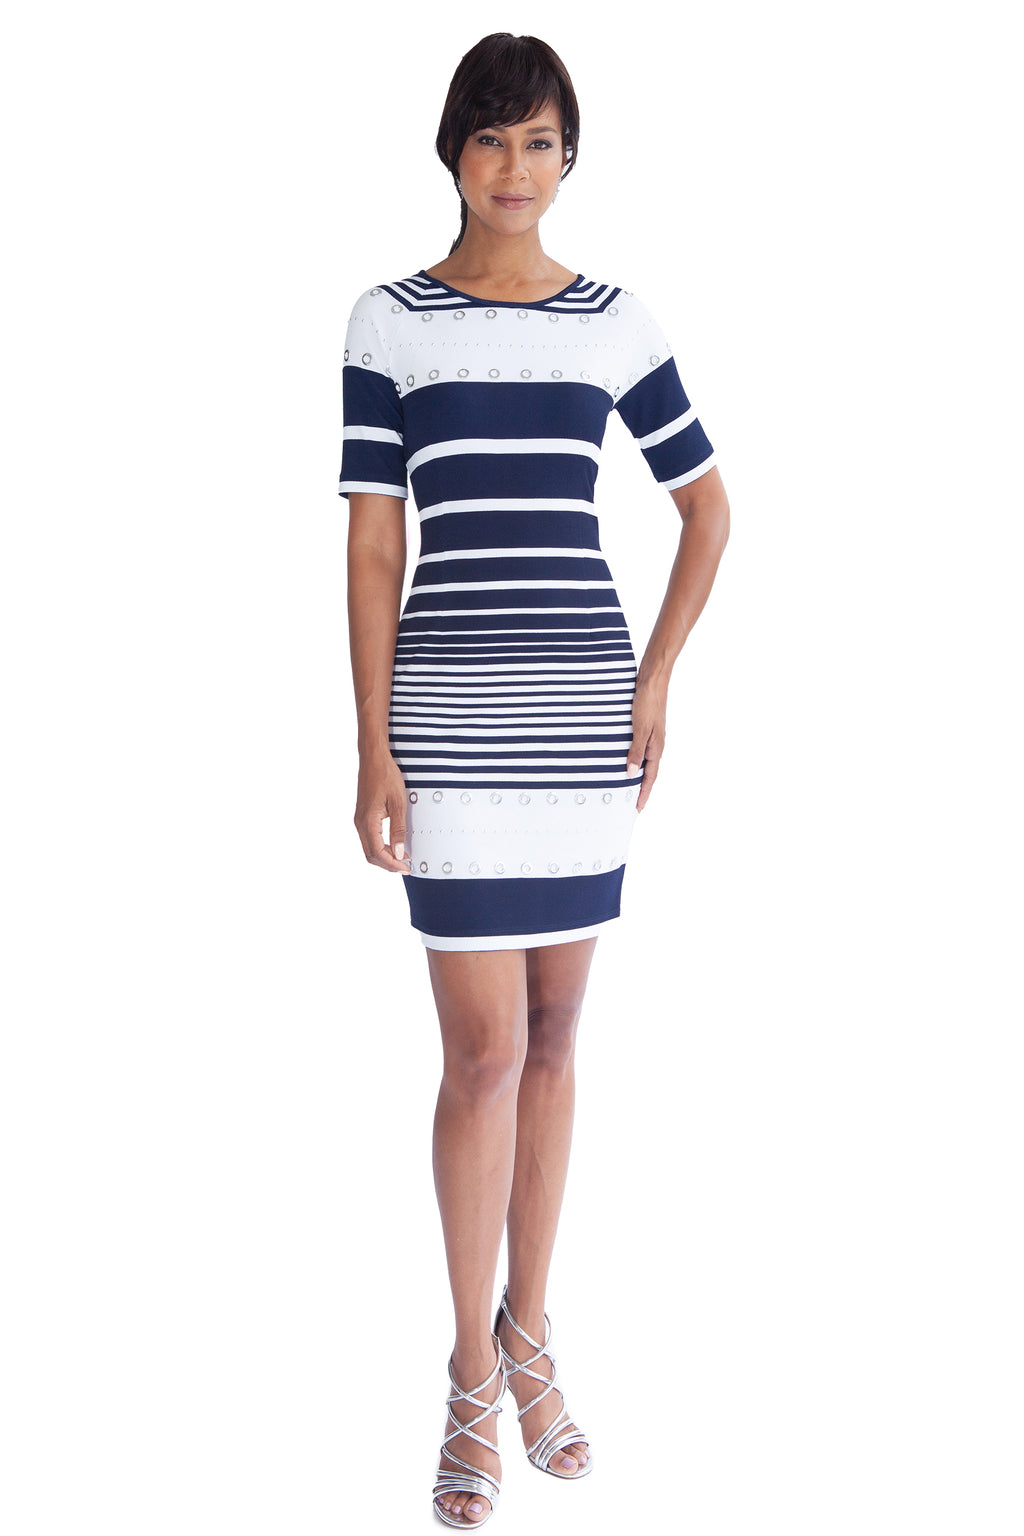 Grommet and Stripe Dress - W1500104